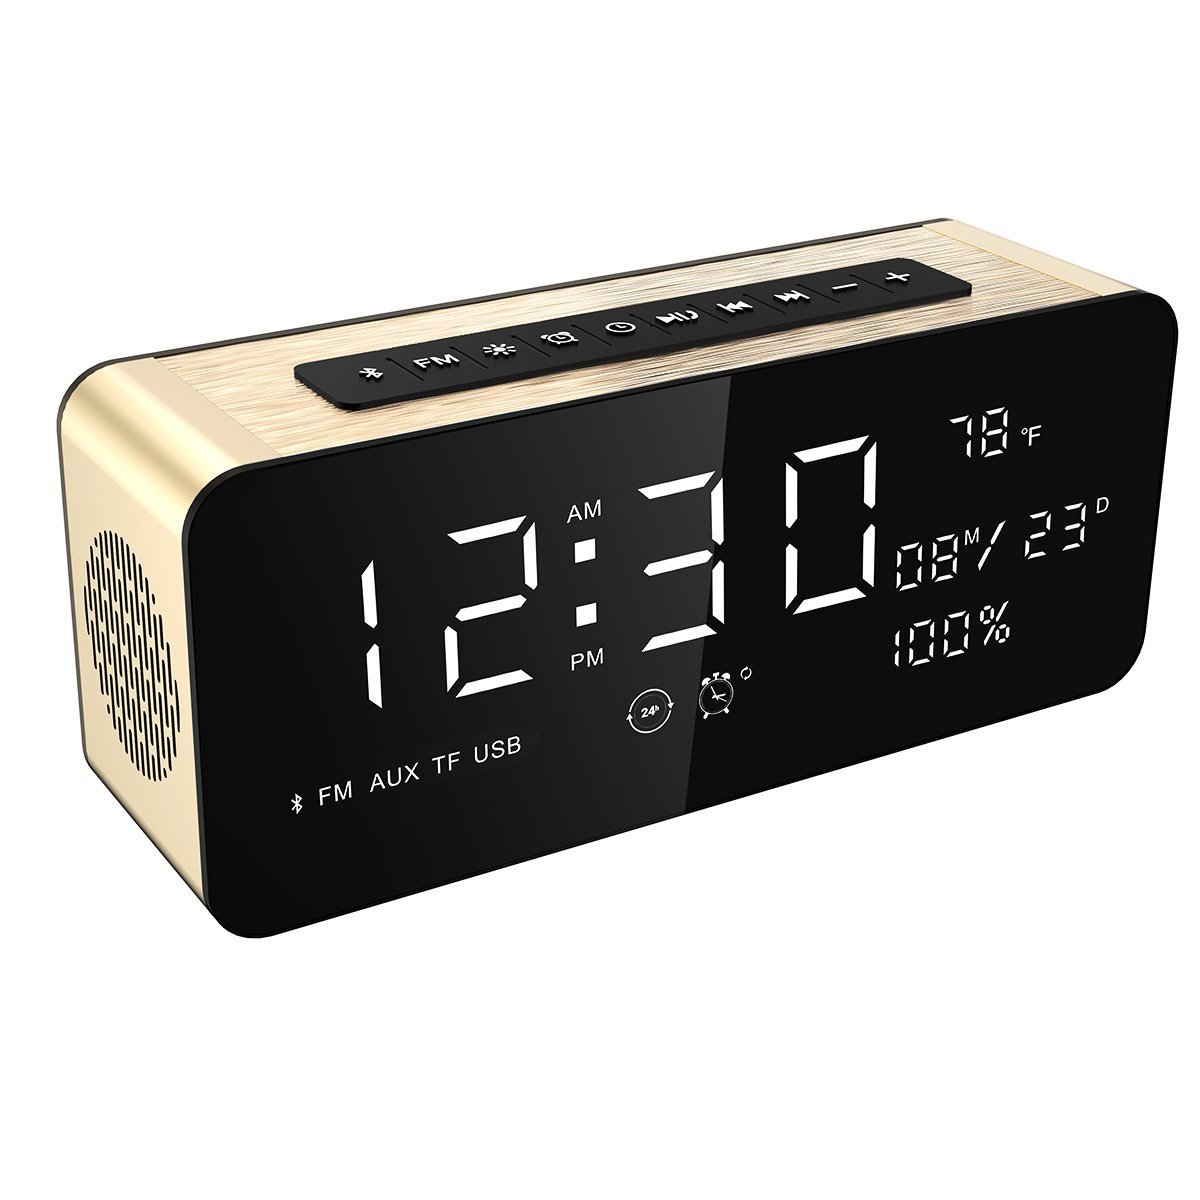 "Soundance Alarm Clock FM Radio Bluetooth Speaker with HD Sound 9.4"" LED Digital Display of Time Date Temperature, iPhone Android Aux MicroSD TF USB Support, Wireless for Office Bedroom Home A10 Sliver"